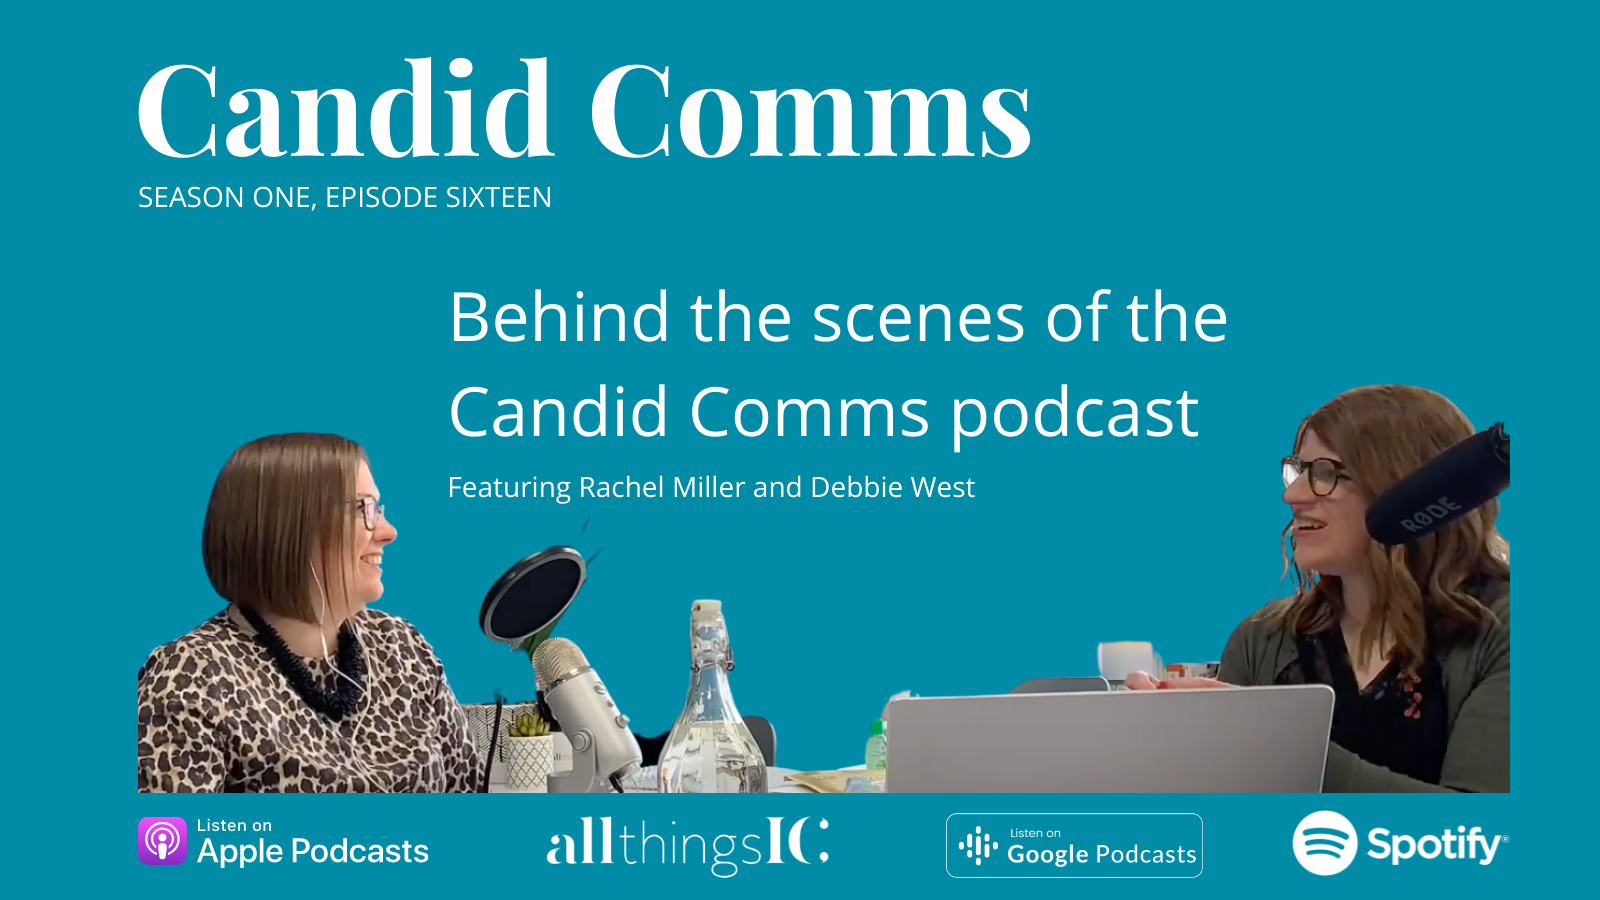 Candid Comms podcast with Rachel Miller and Debbie West